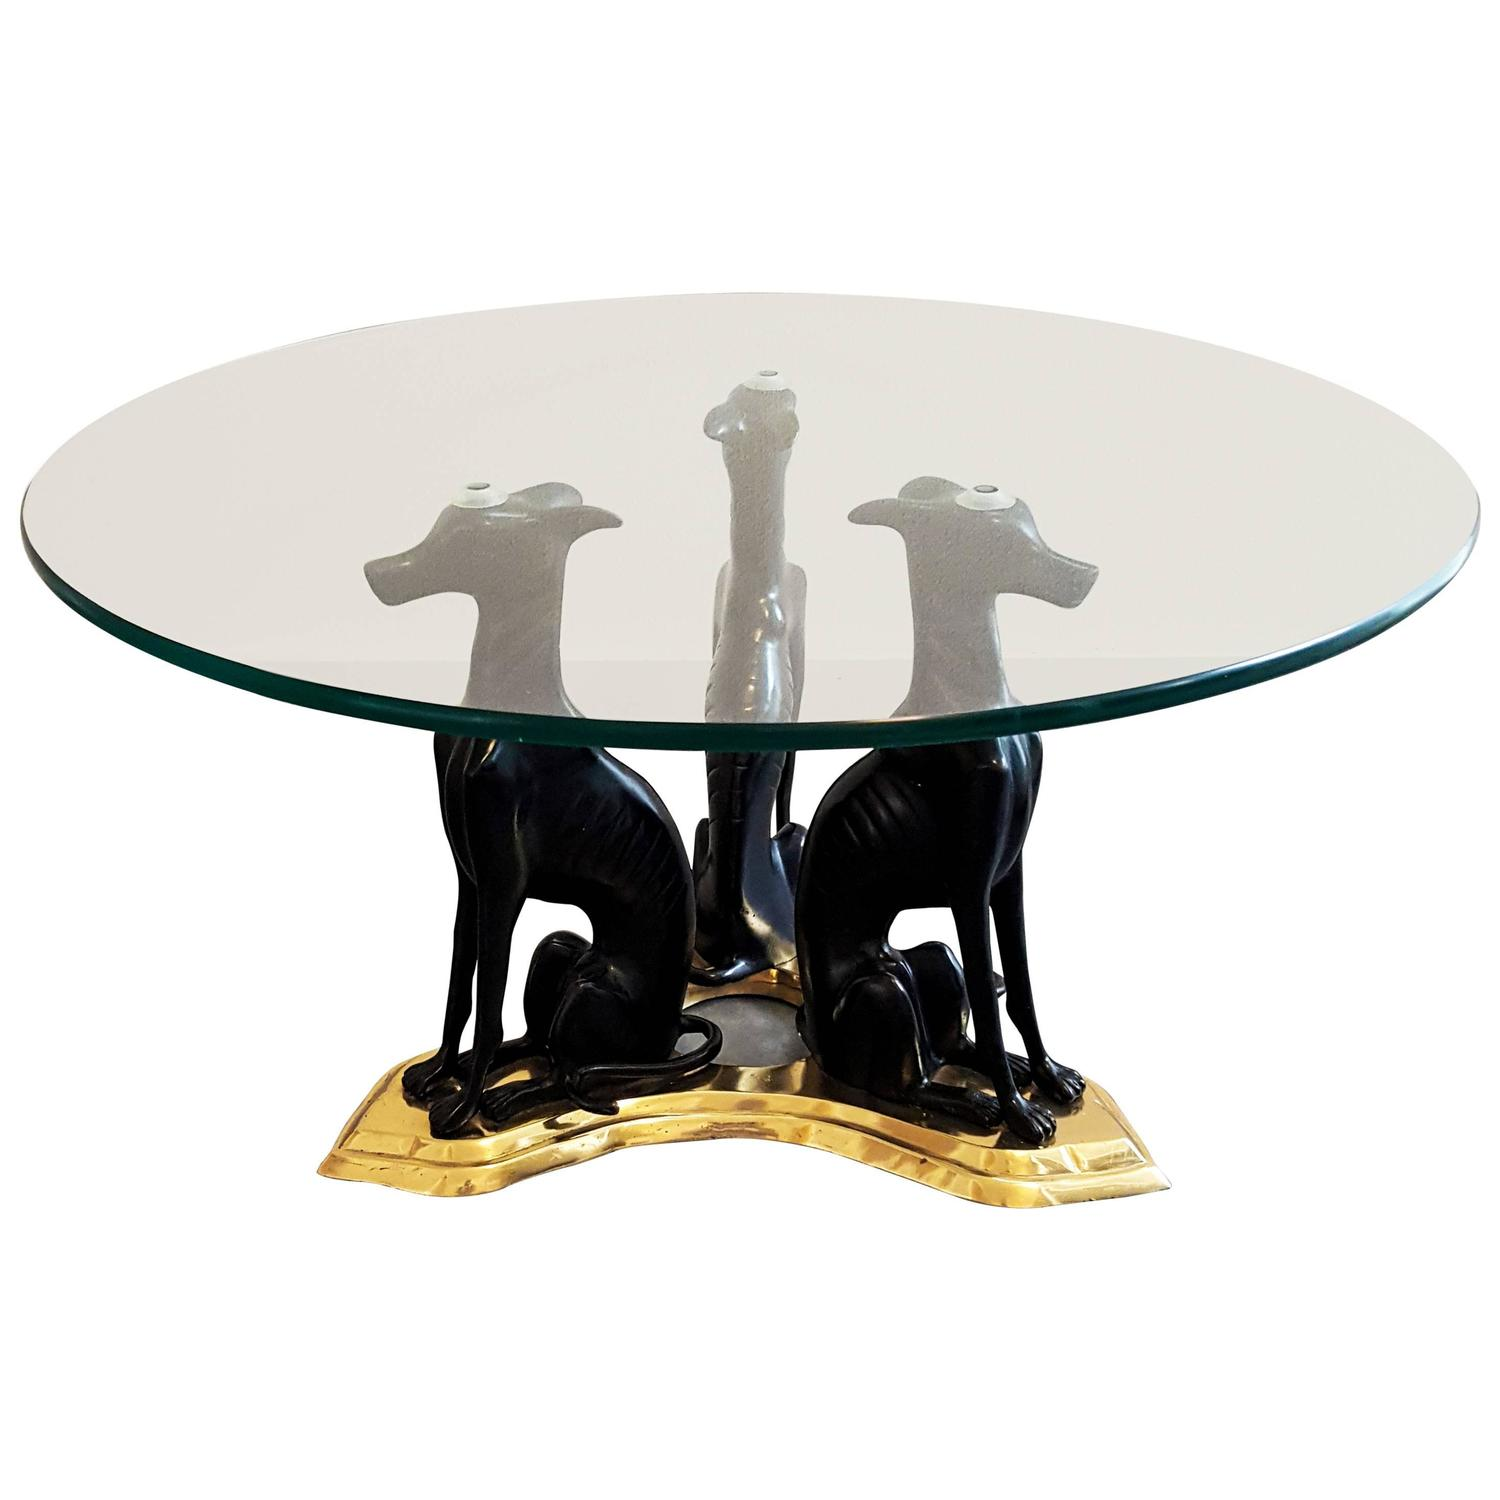 Maitland Smith Cast Bronze and Brass Whippet Cocktail Table at 1stdibs